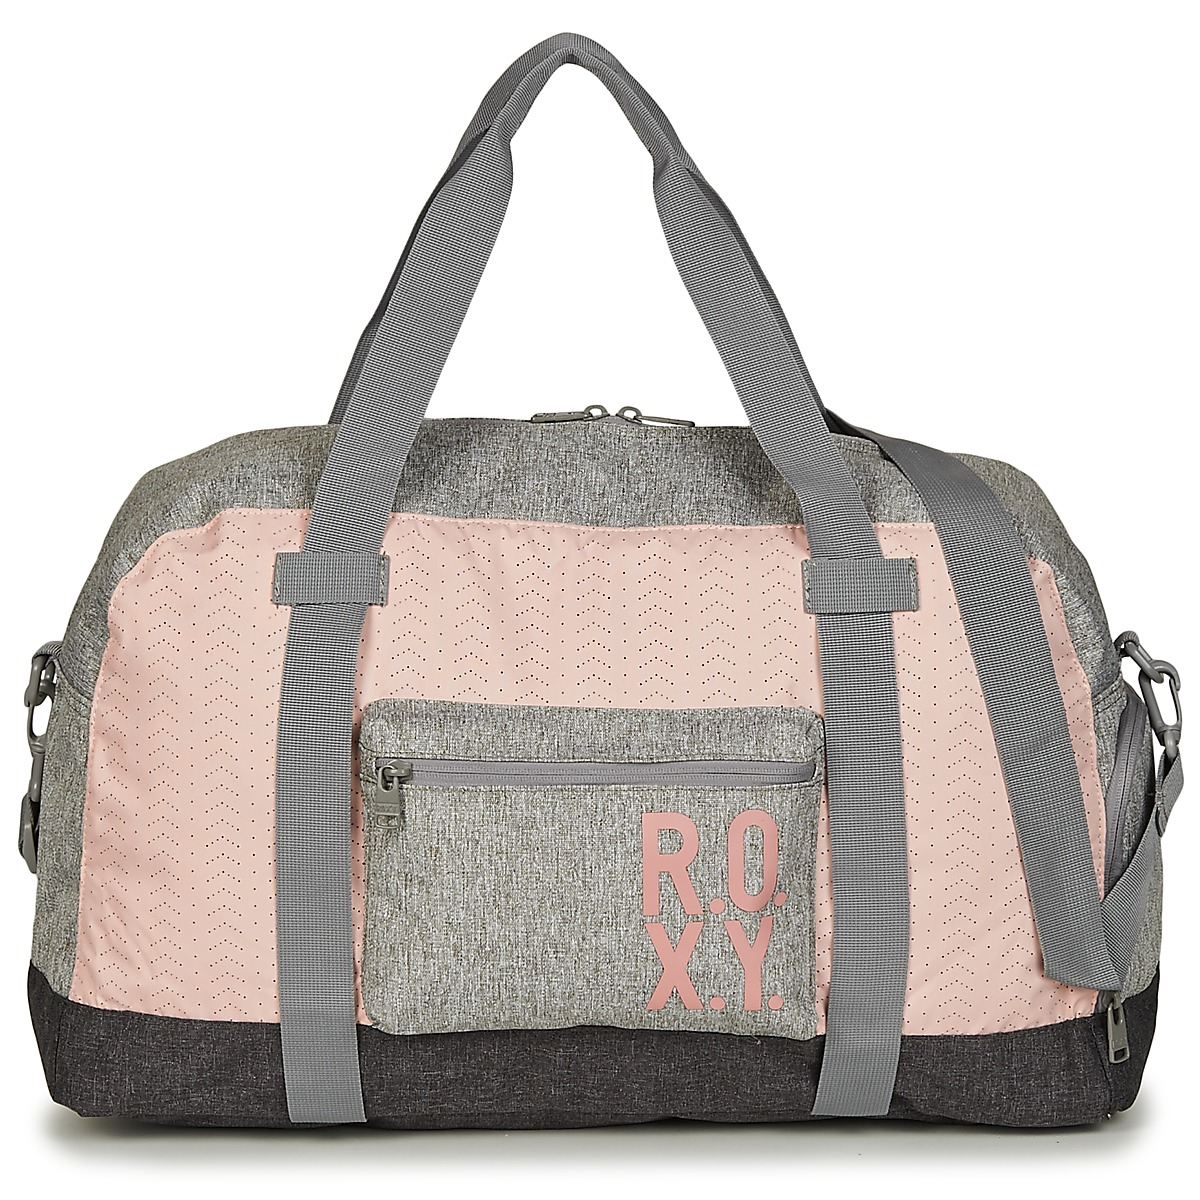 Borsa da viaggio donna Roxy  WINTER COME BACK  Grigio Roxy 3613373809315